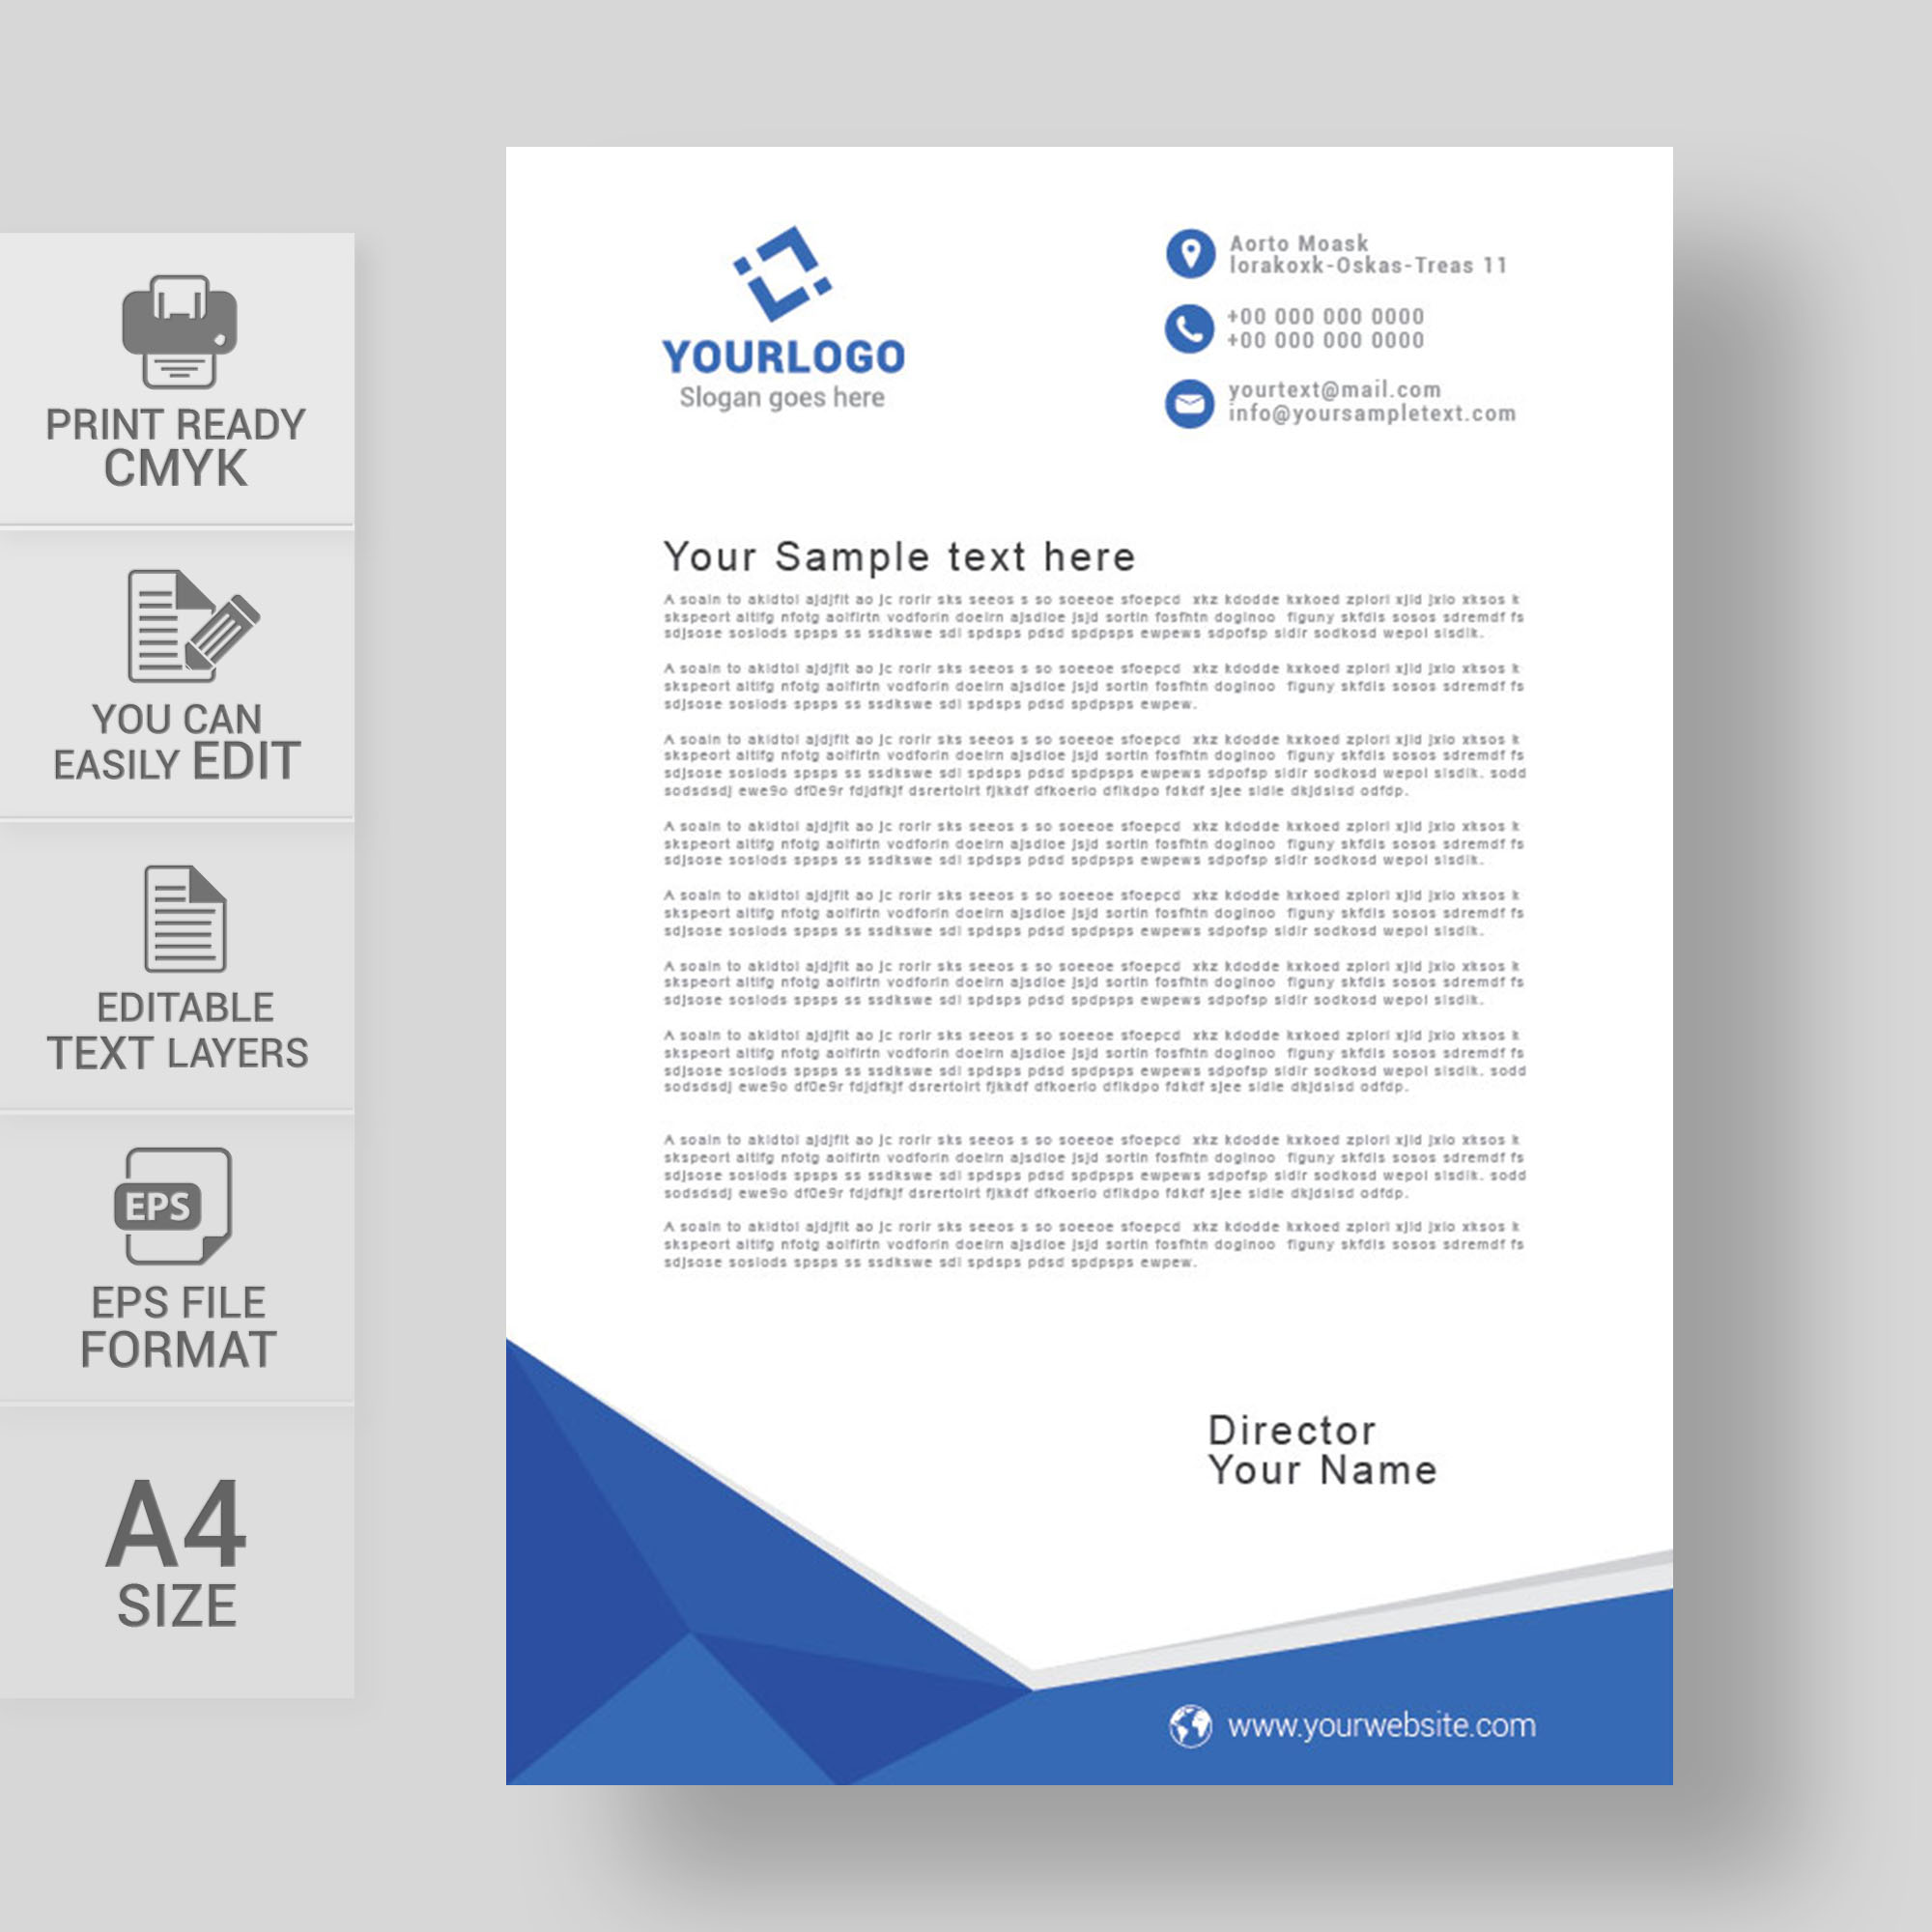 personalized letterhead templates sample templatex1234